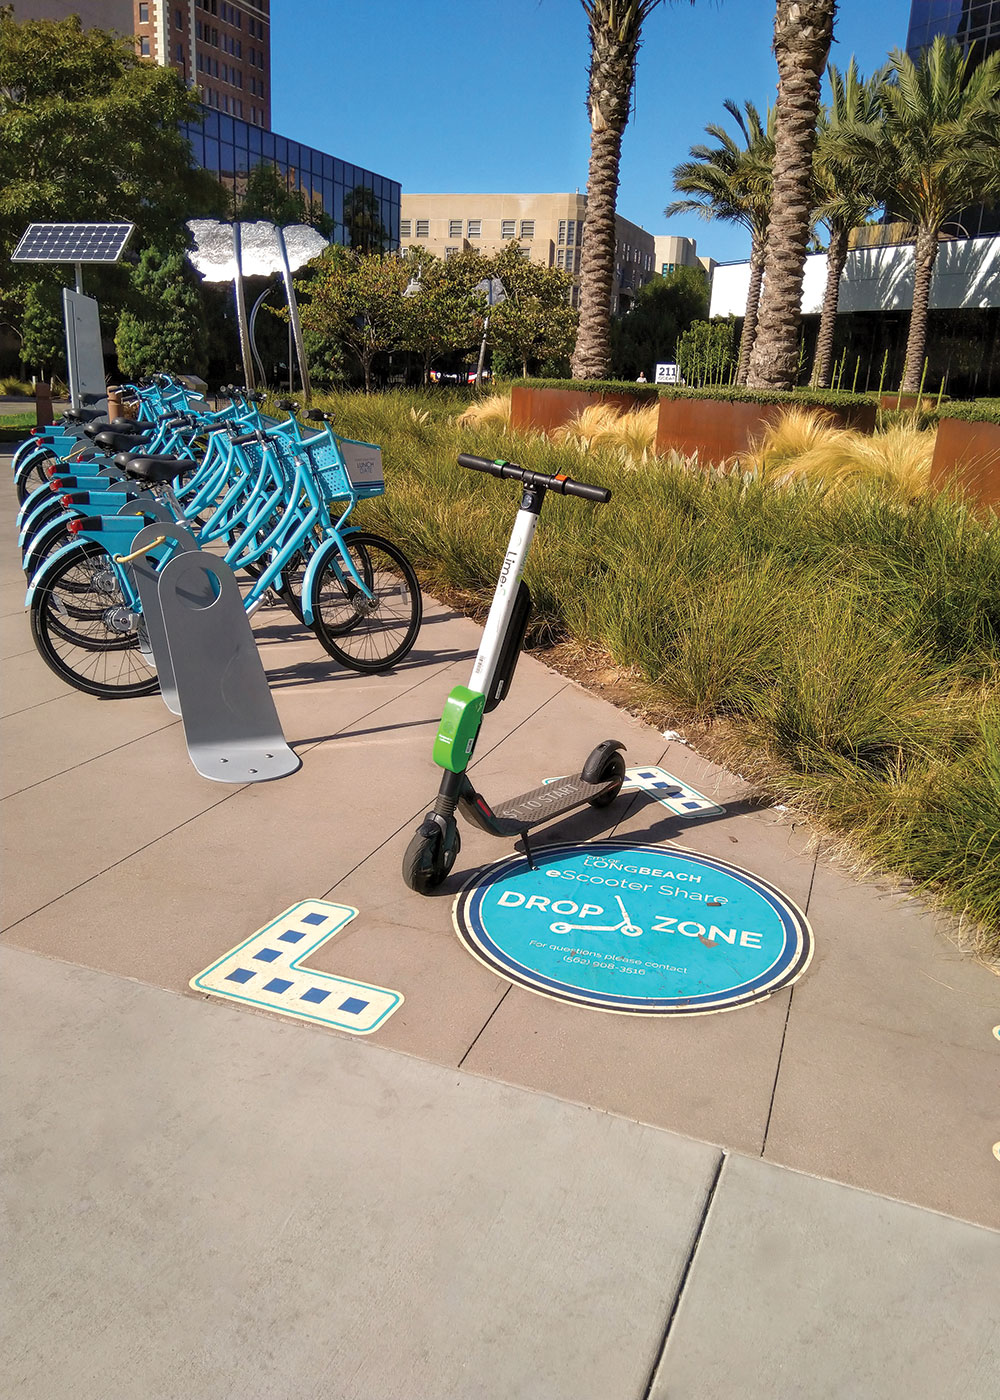 Long Beach, California, colocated a scooter drop corral with a bike-share dock to help keep sidewalks clear. Courtesy WGI.